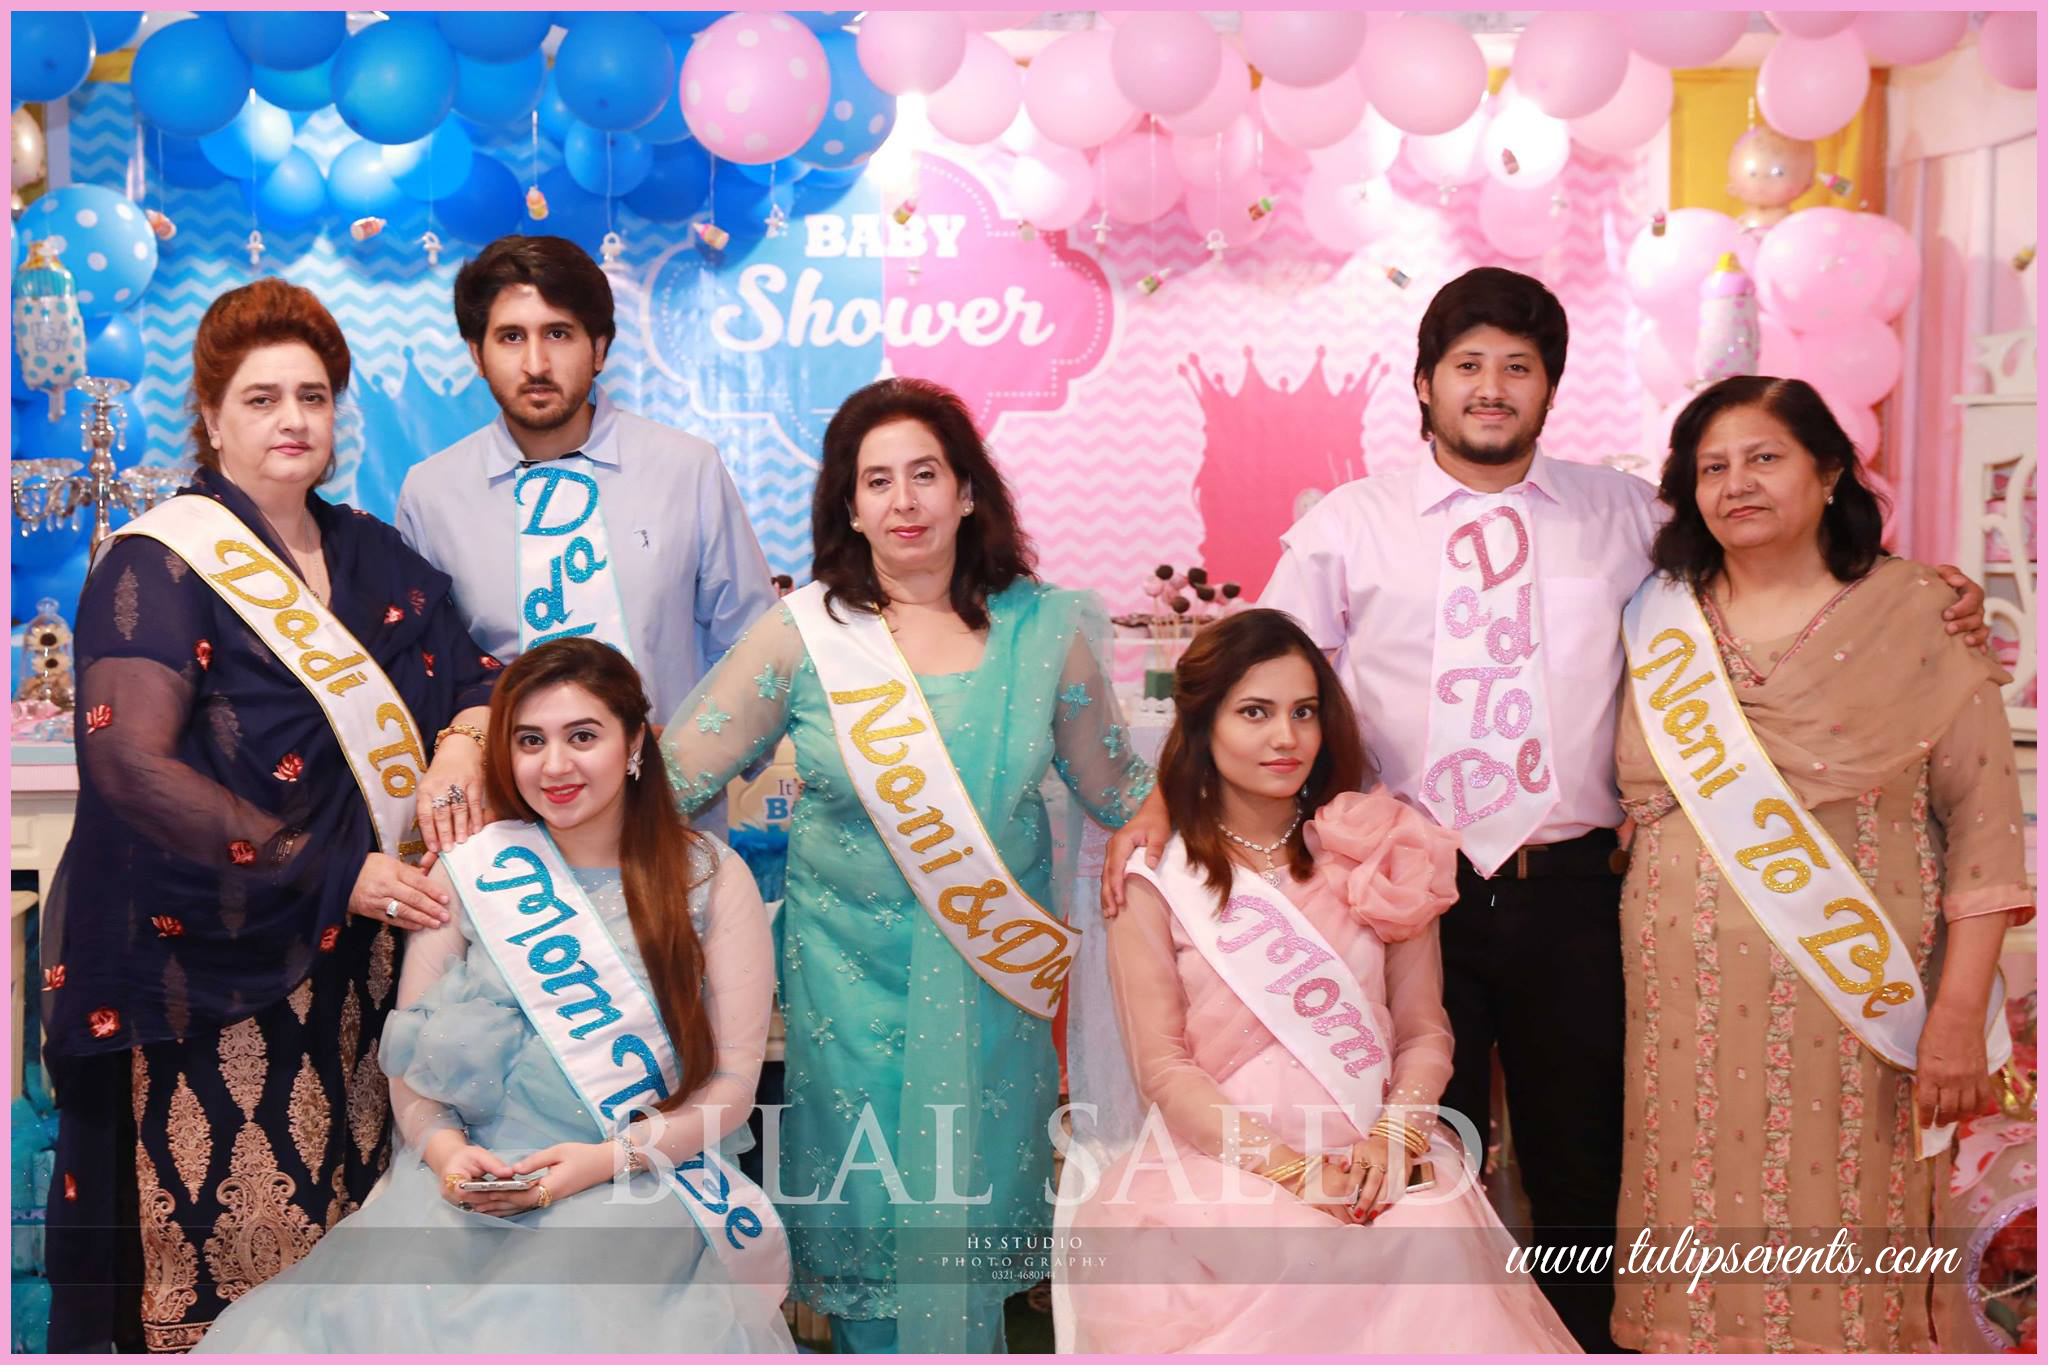 Baby Shower Party decoration ideas tulips events in Pakistan (2)